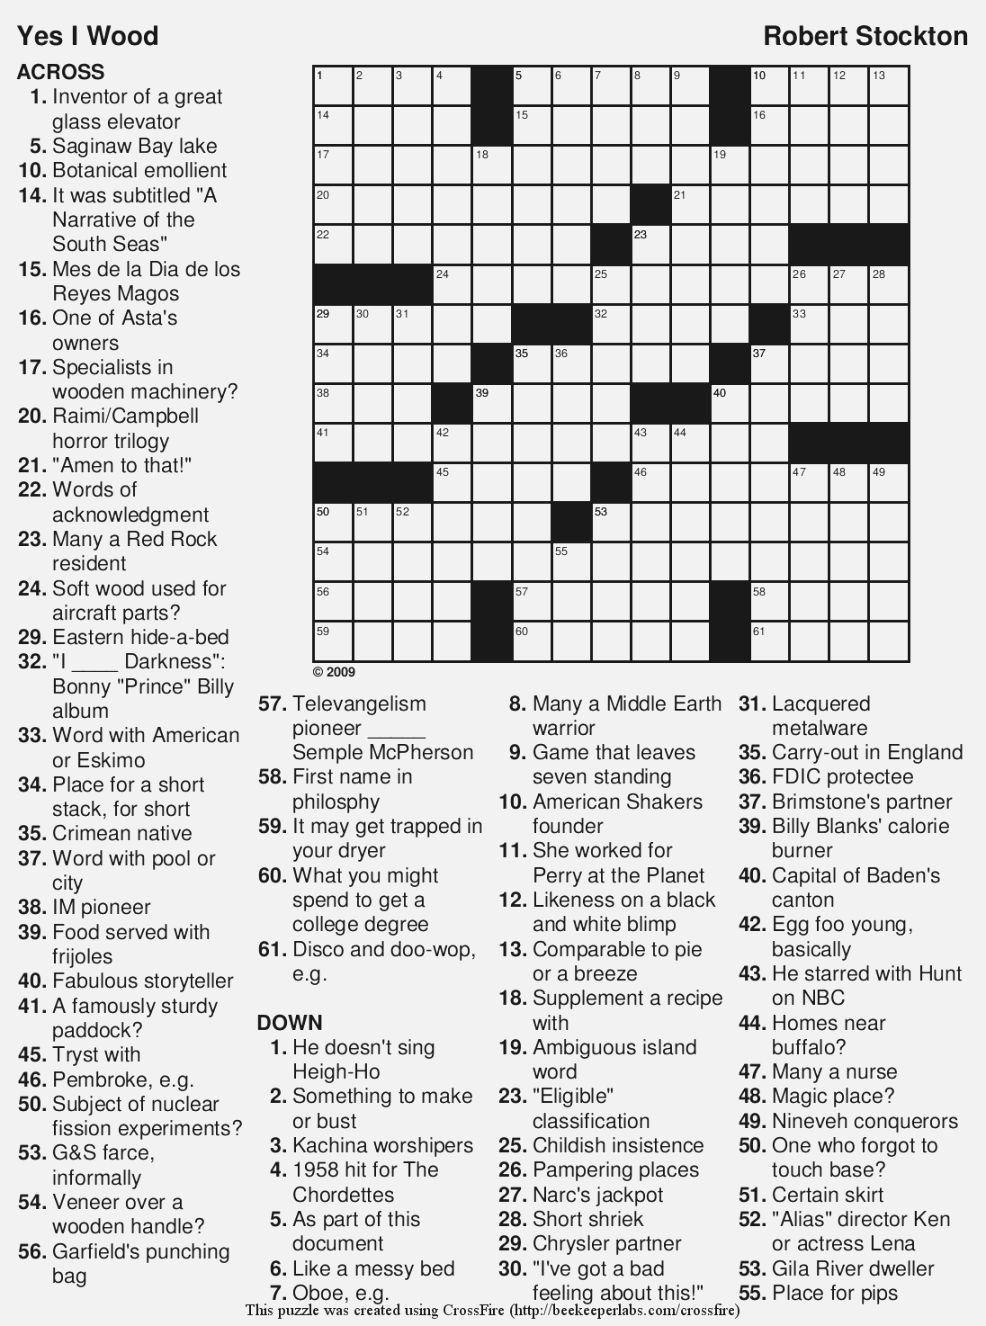 Free Printable Large Print Crossword Puzzles | M3U8 - Free Large Print Crossword Puzzles Online